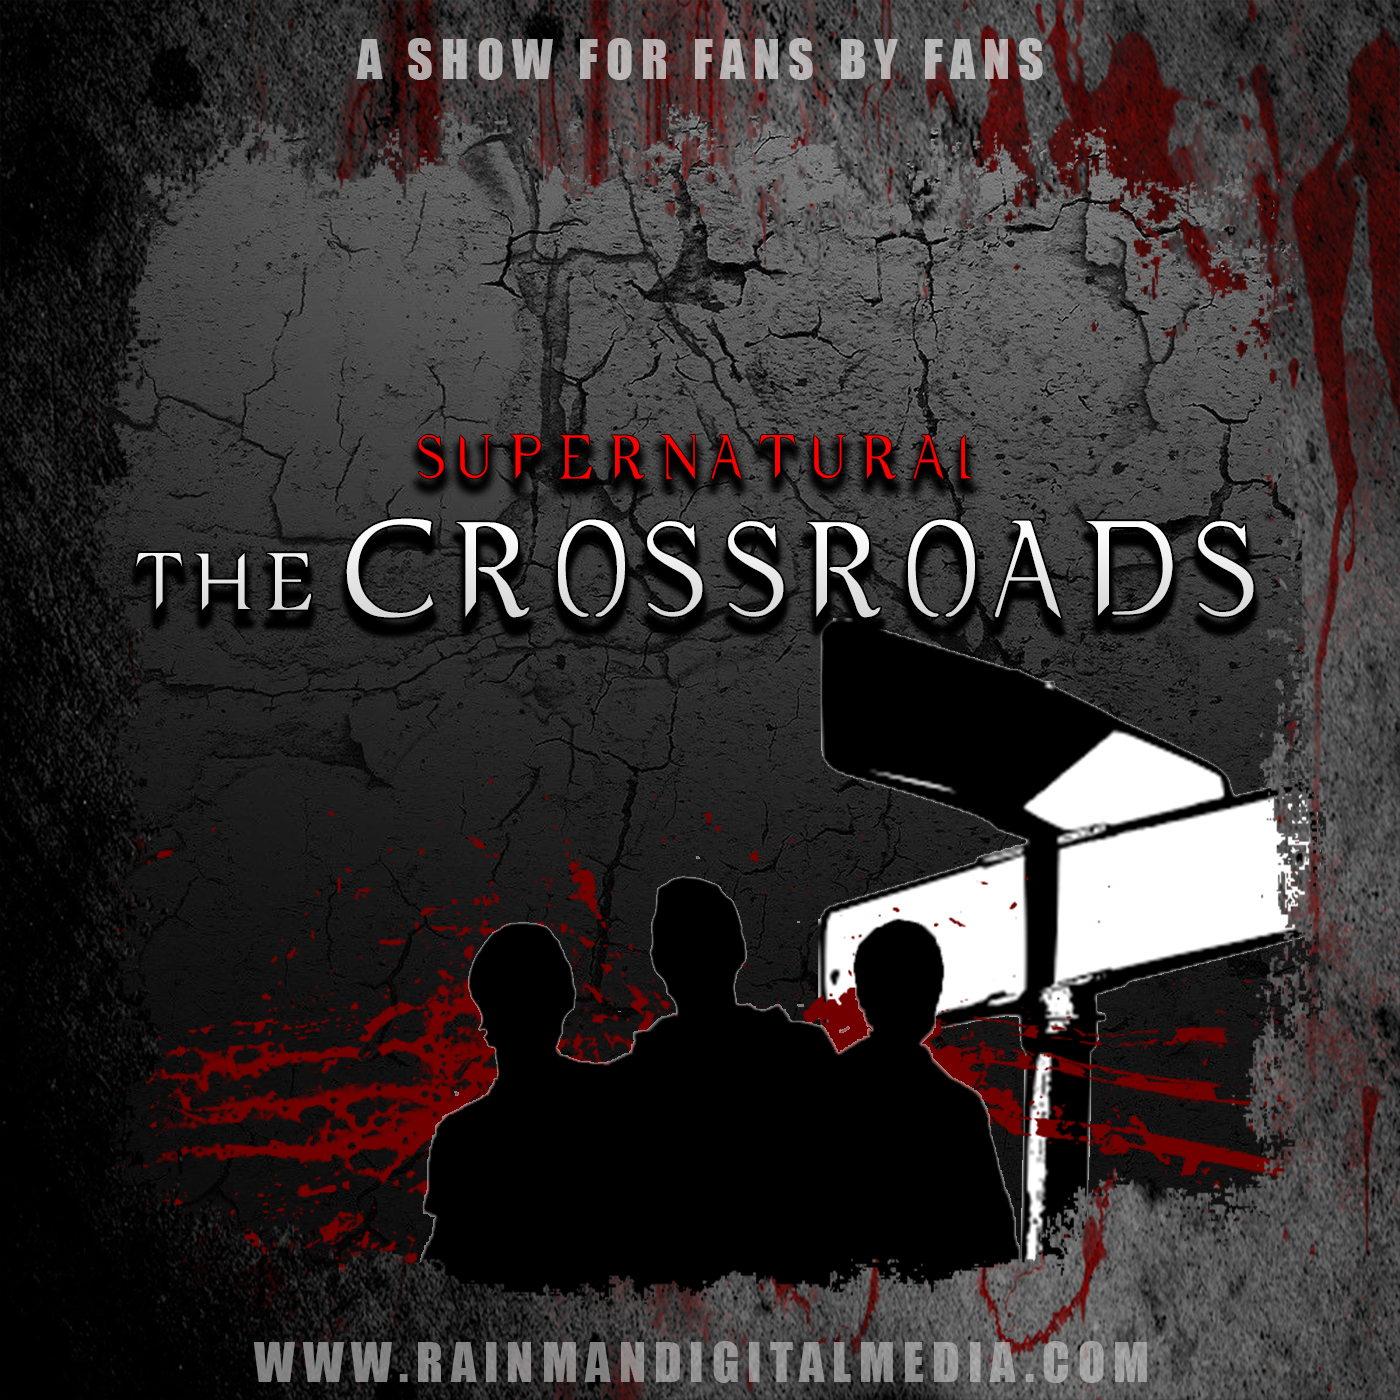 crossroads chatrooms Online group chat for web sites stunning online group chat rooms for private communities, web chats and live events more than 566,000 group chats created so far.